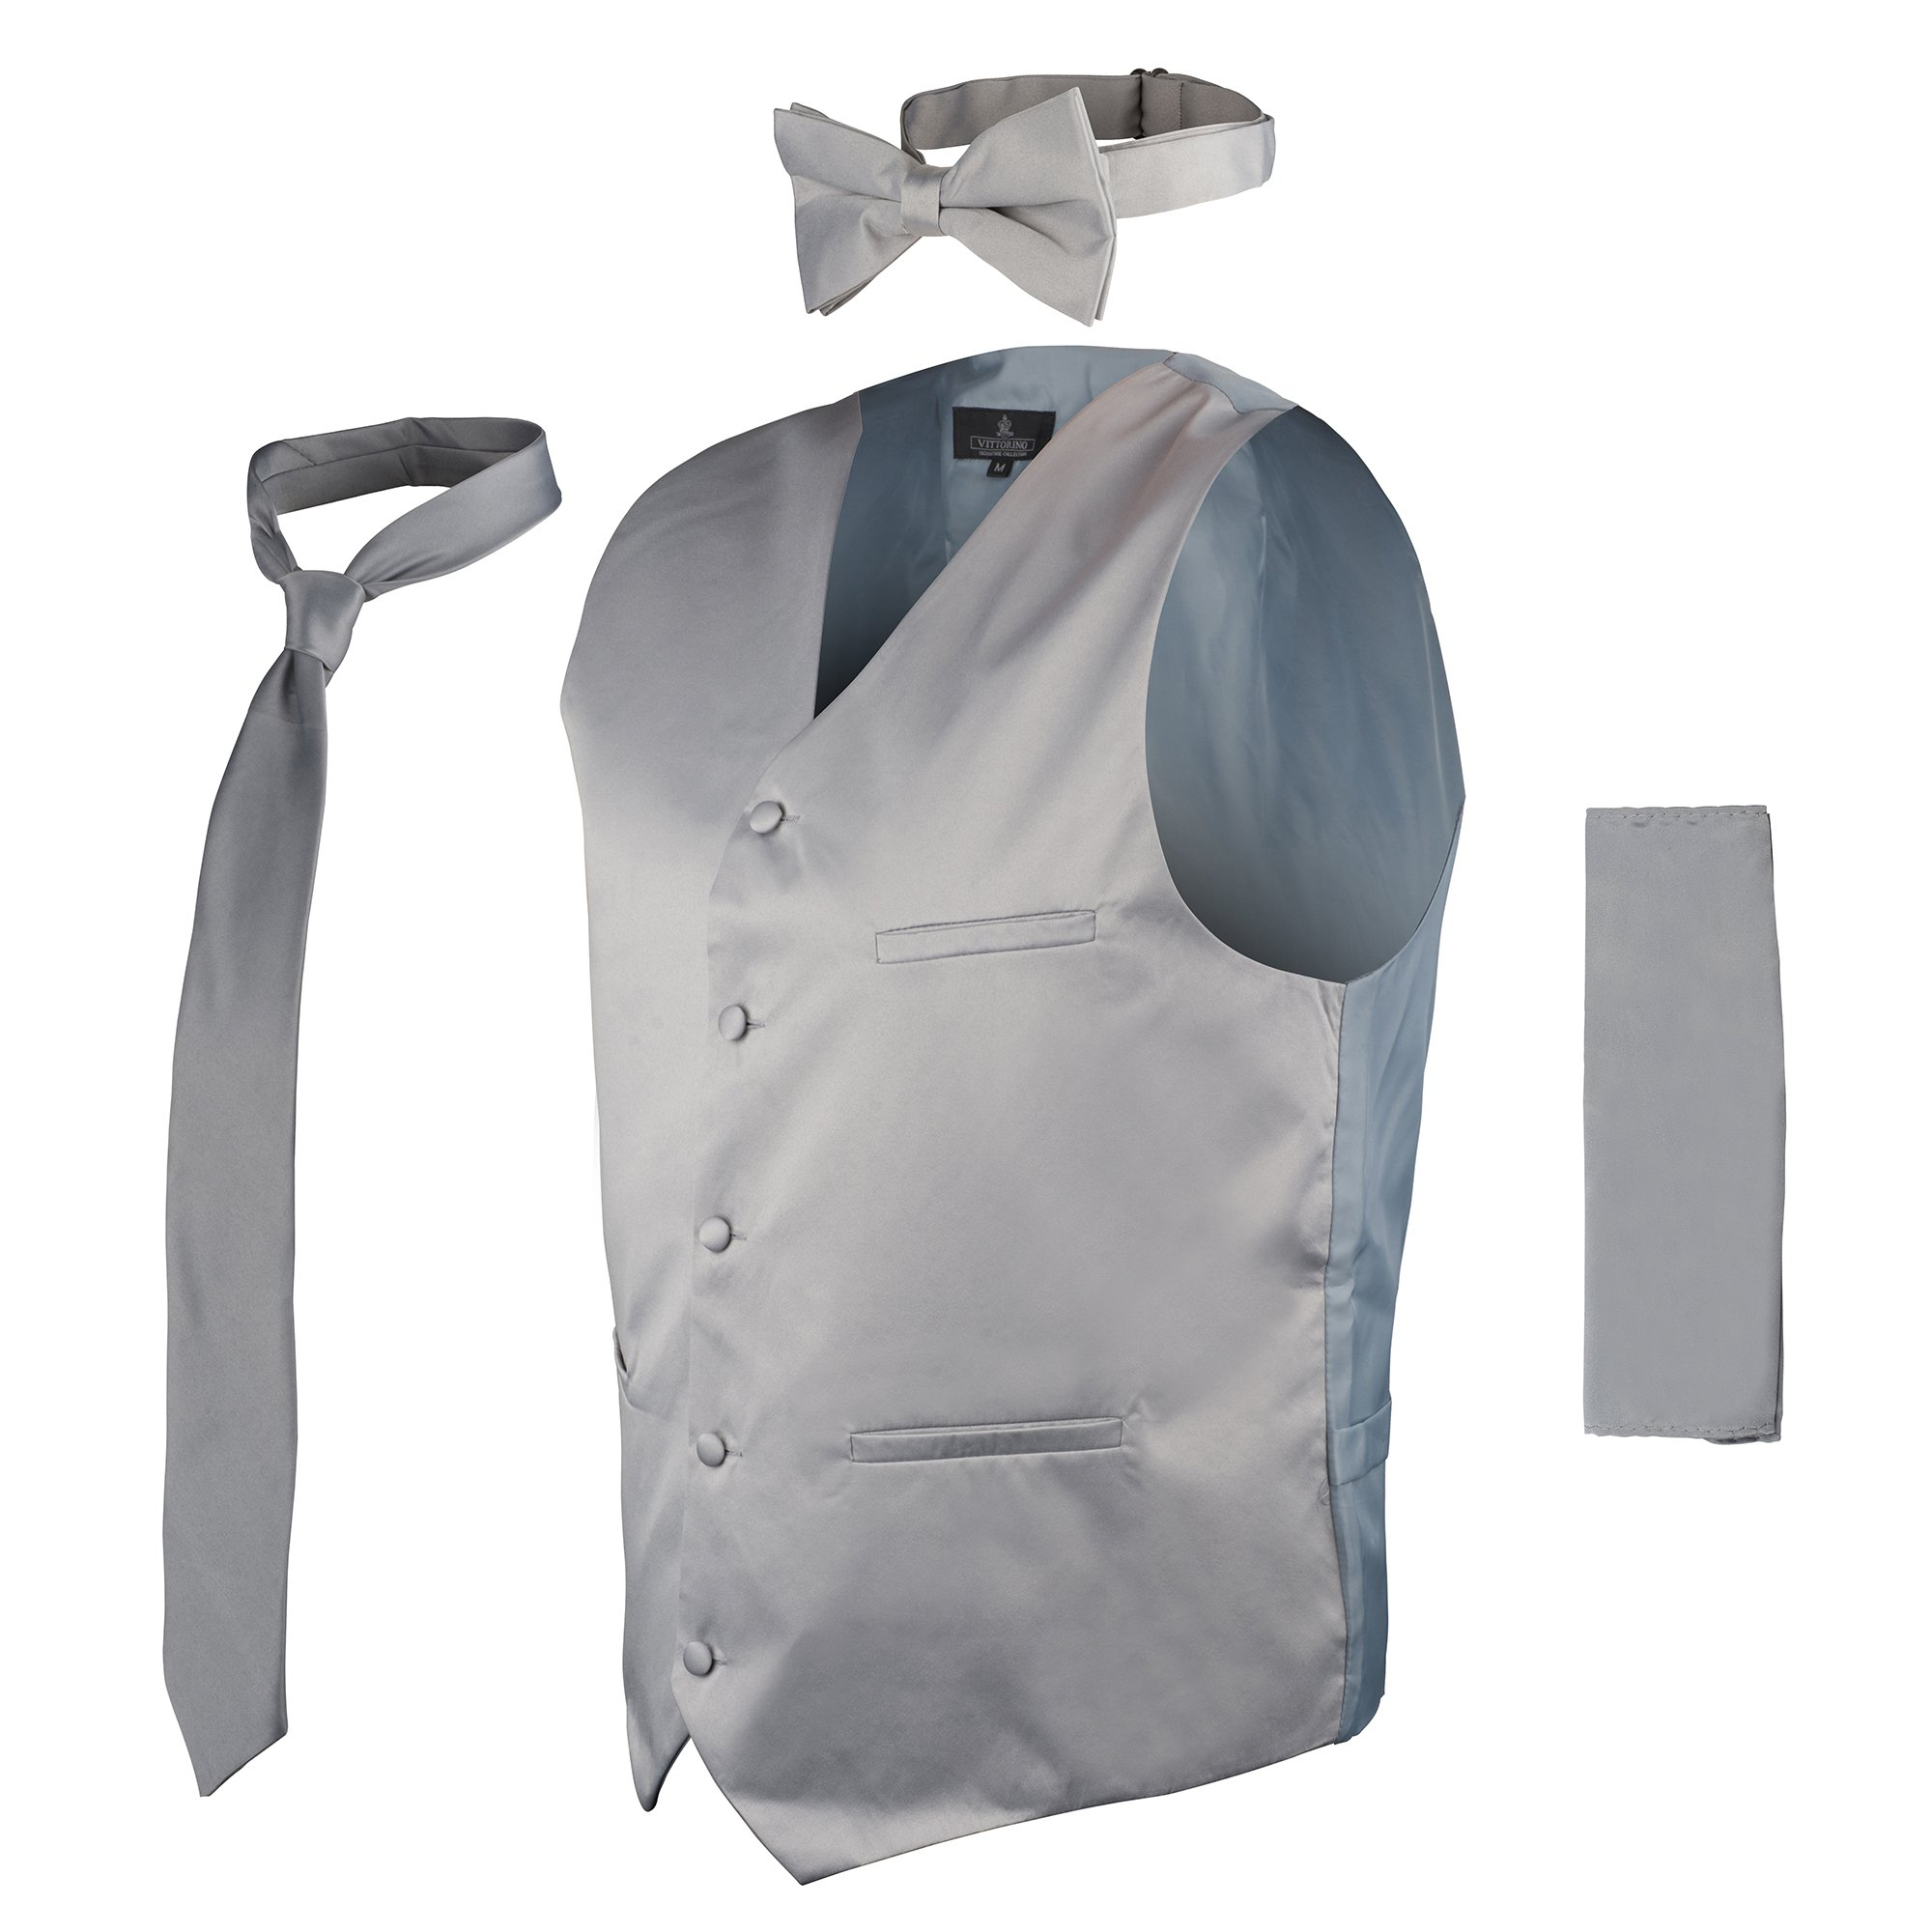 Vittorino's 4 Piece Formal Tuxedo Vest Set Combo with Tie Bow Tie and Handkerchief,Grey,Large